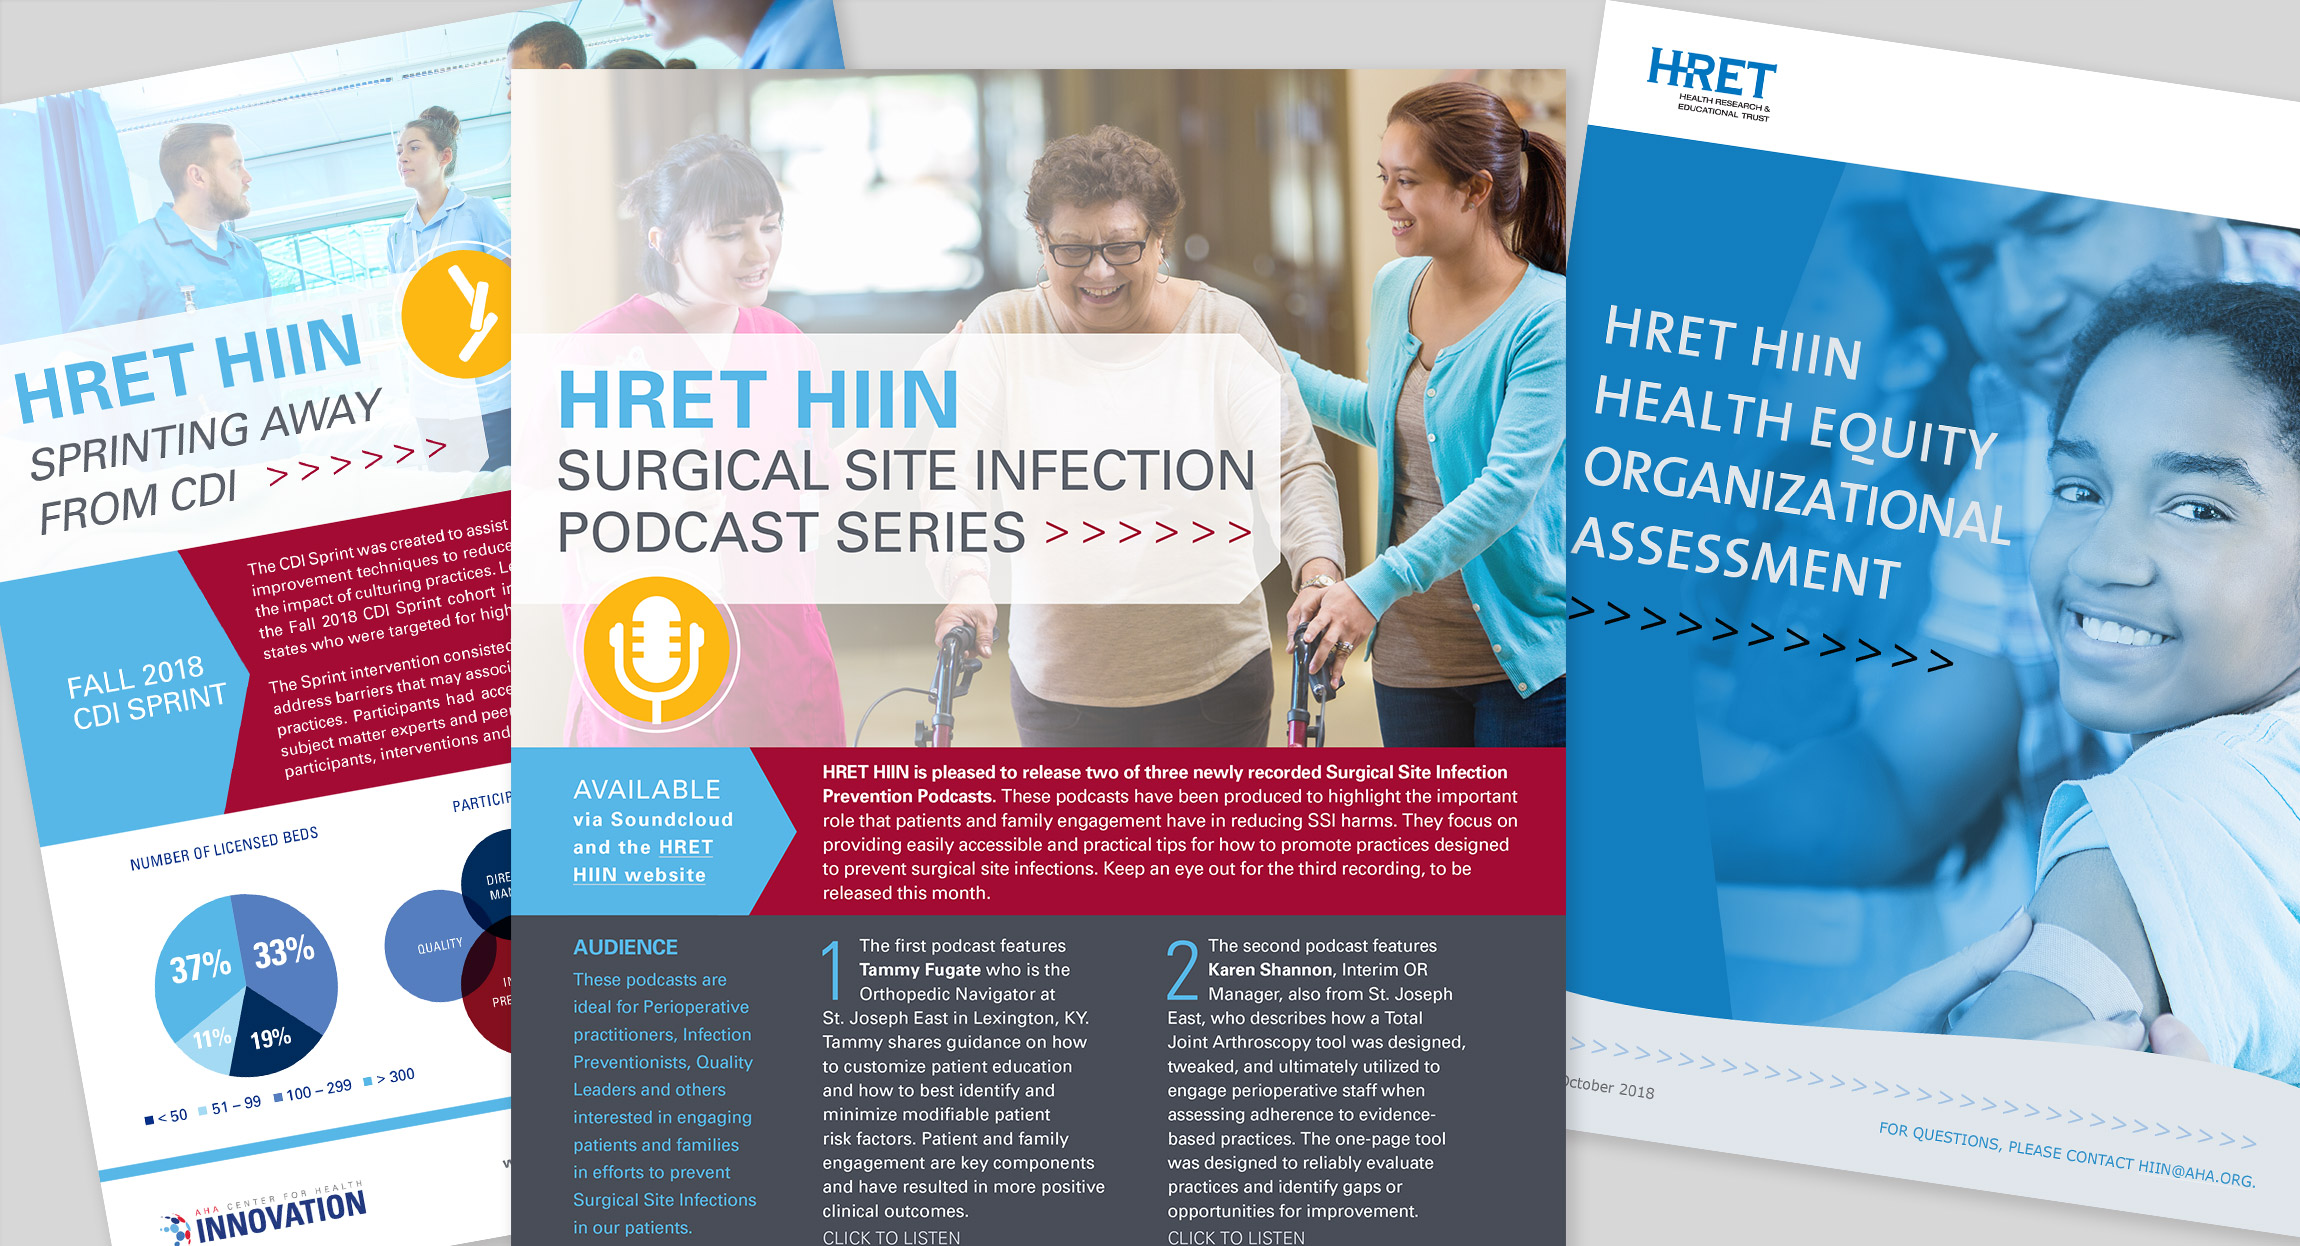 Design and Branding for HRET HIIN by Hughes Design Communications